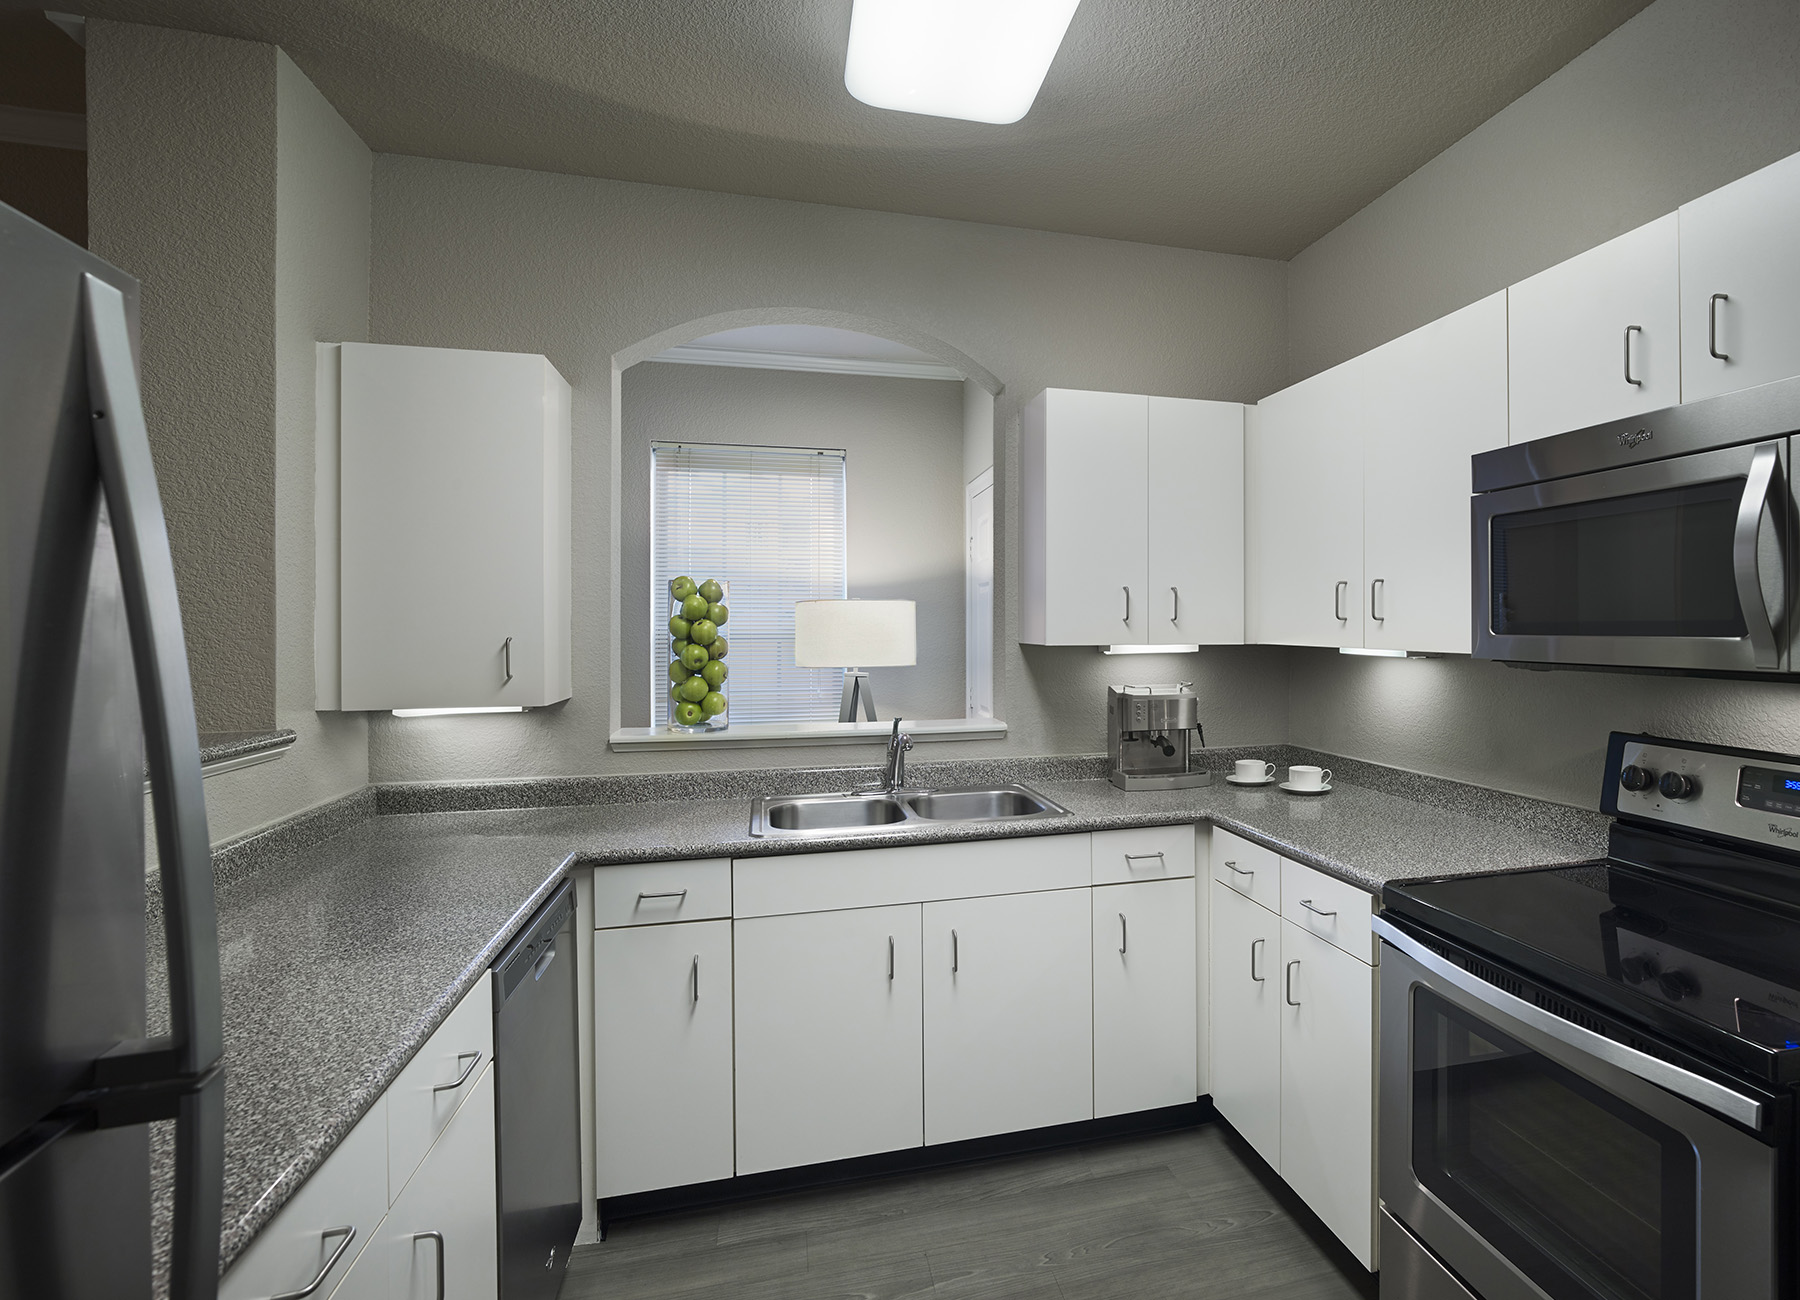 Kitchen with white cabinets and full sized appliances